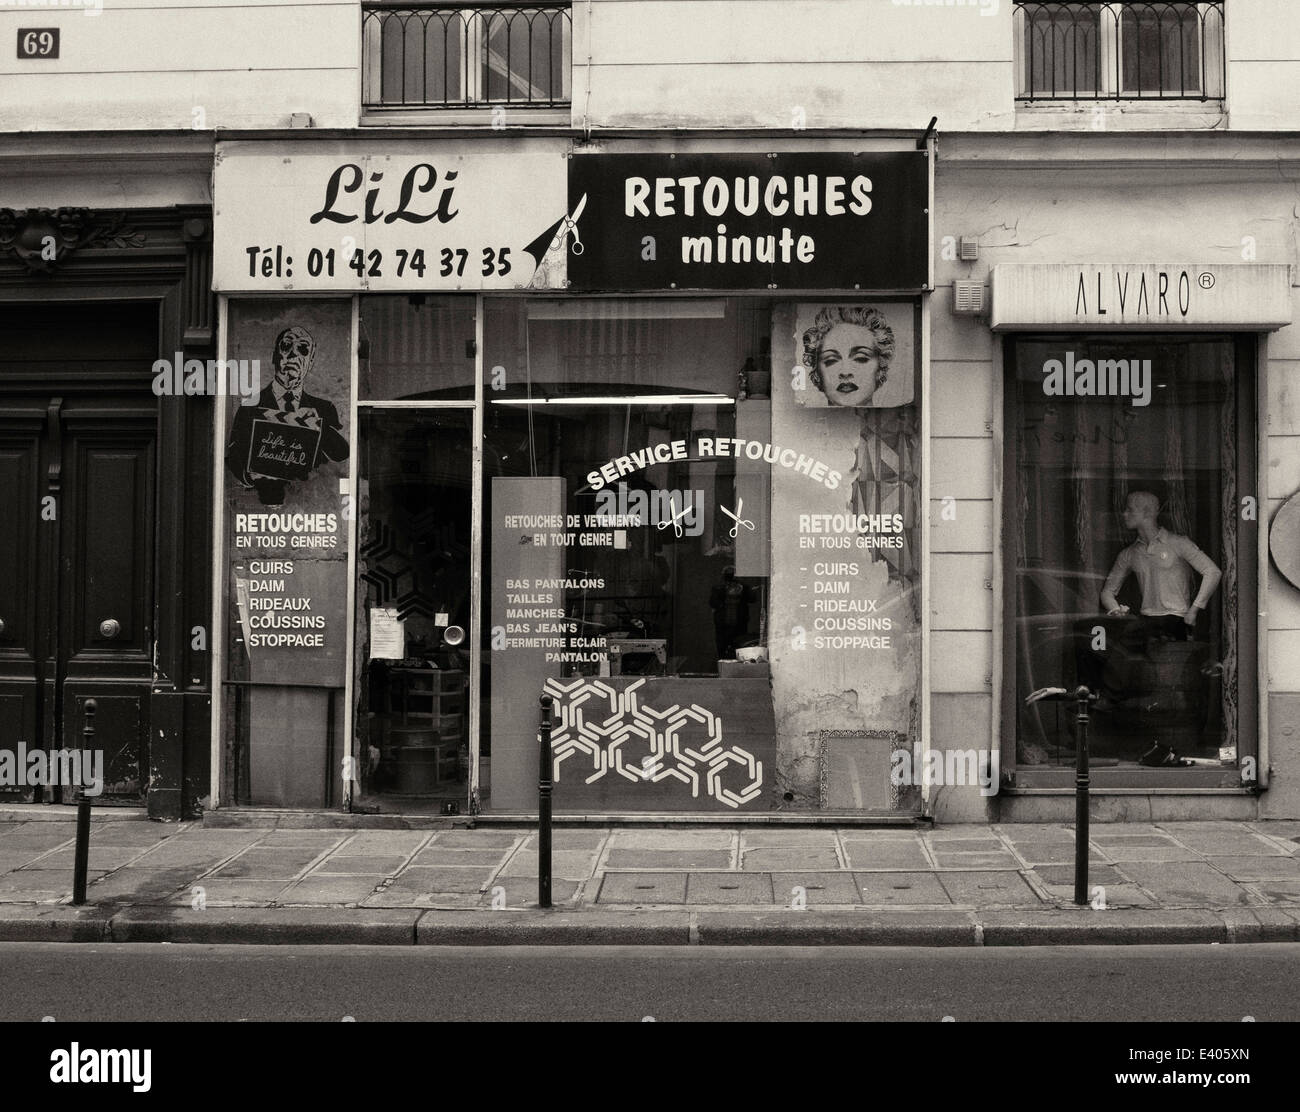 Sewing and alterations shop in the 20th arrondissement of Paris - Stock Image